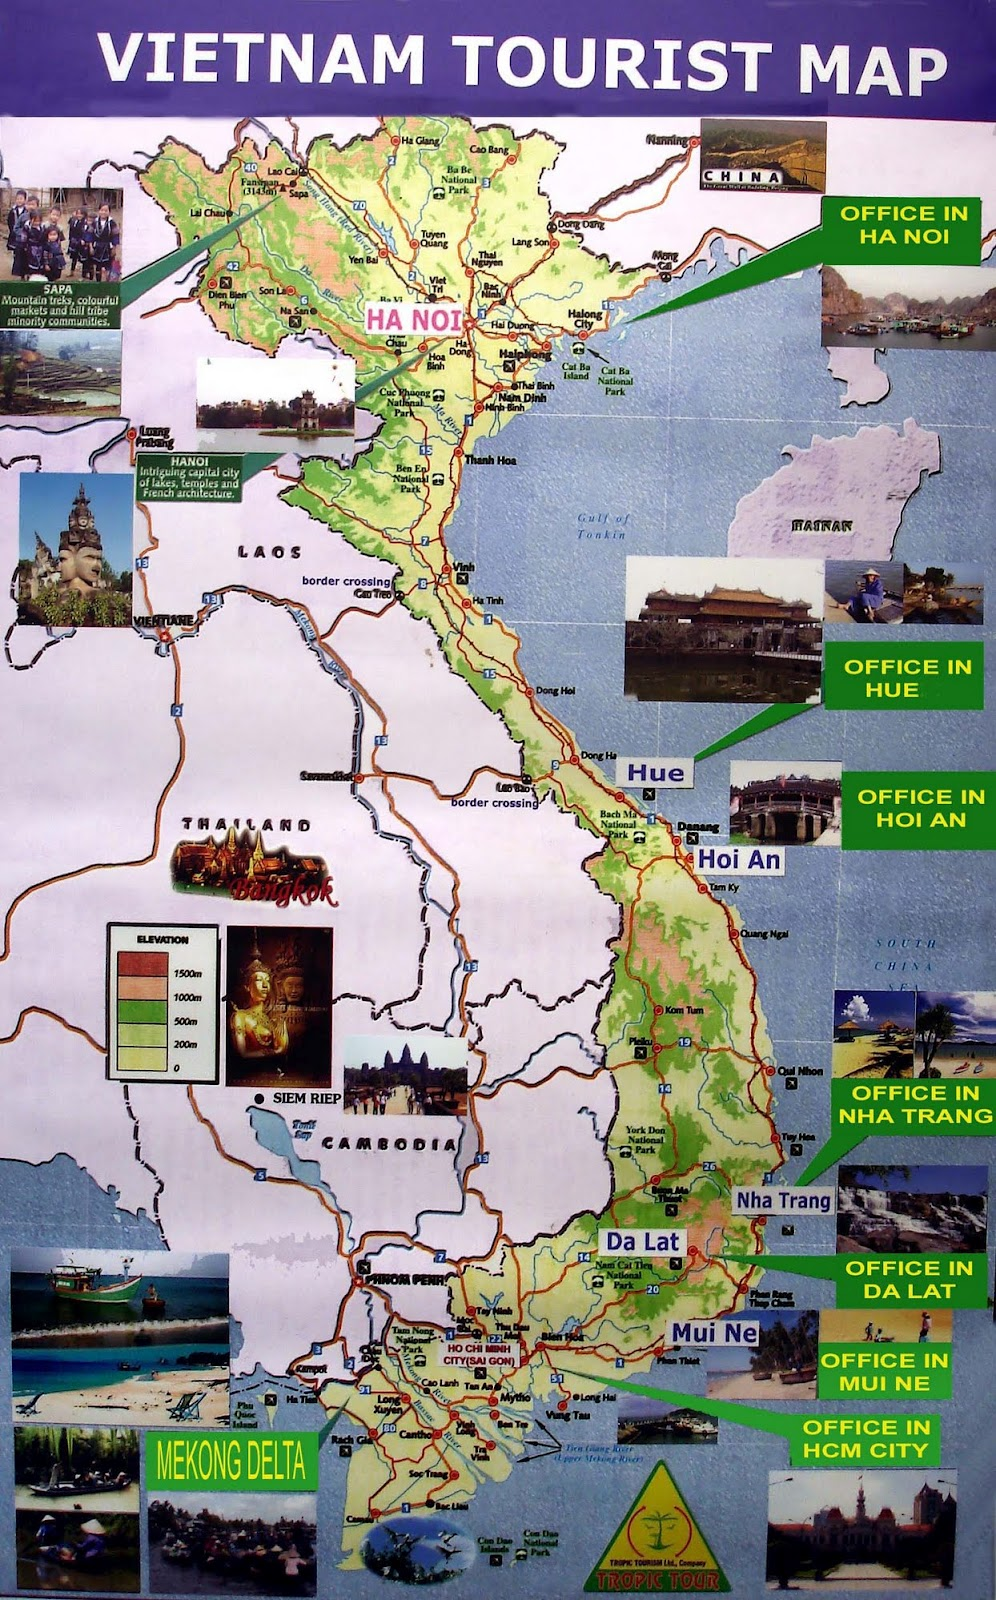 tobiak travel TRAVEL AROUND THE WORLD ALANKABUUT AYAT 20 – Tourist Attractions Map In Vietnam